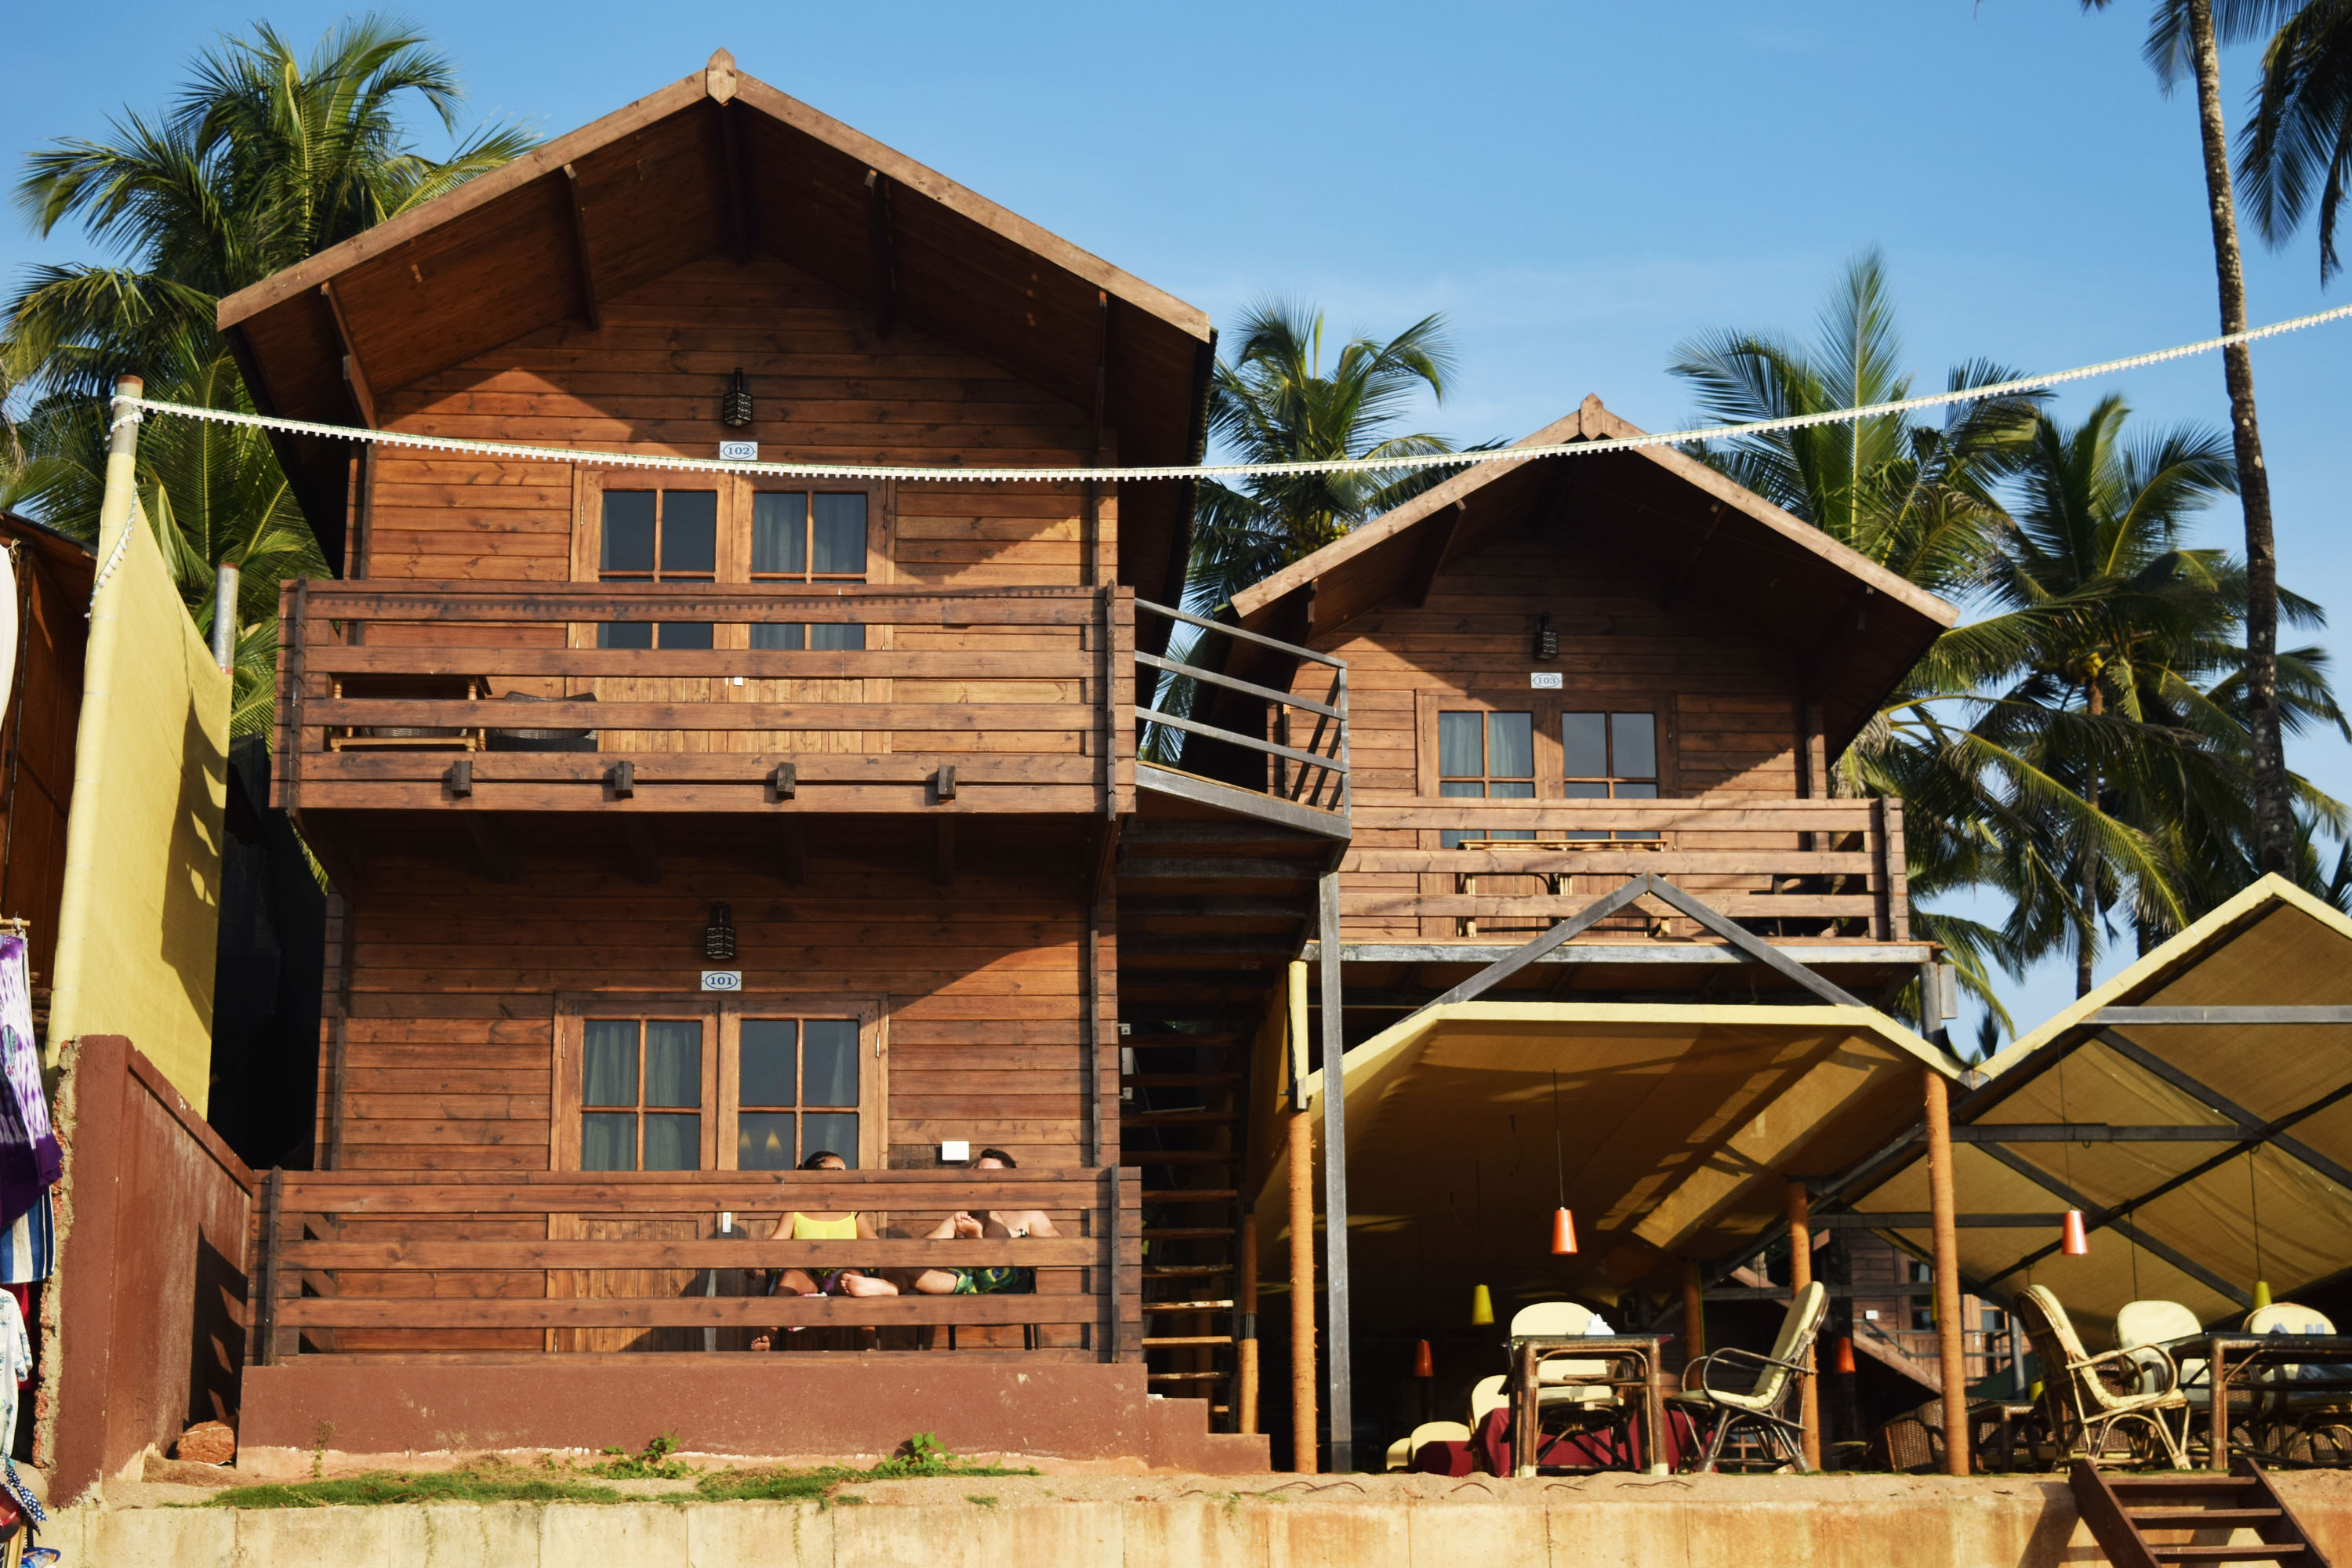 huts on goa beach, free indian stock photos and images